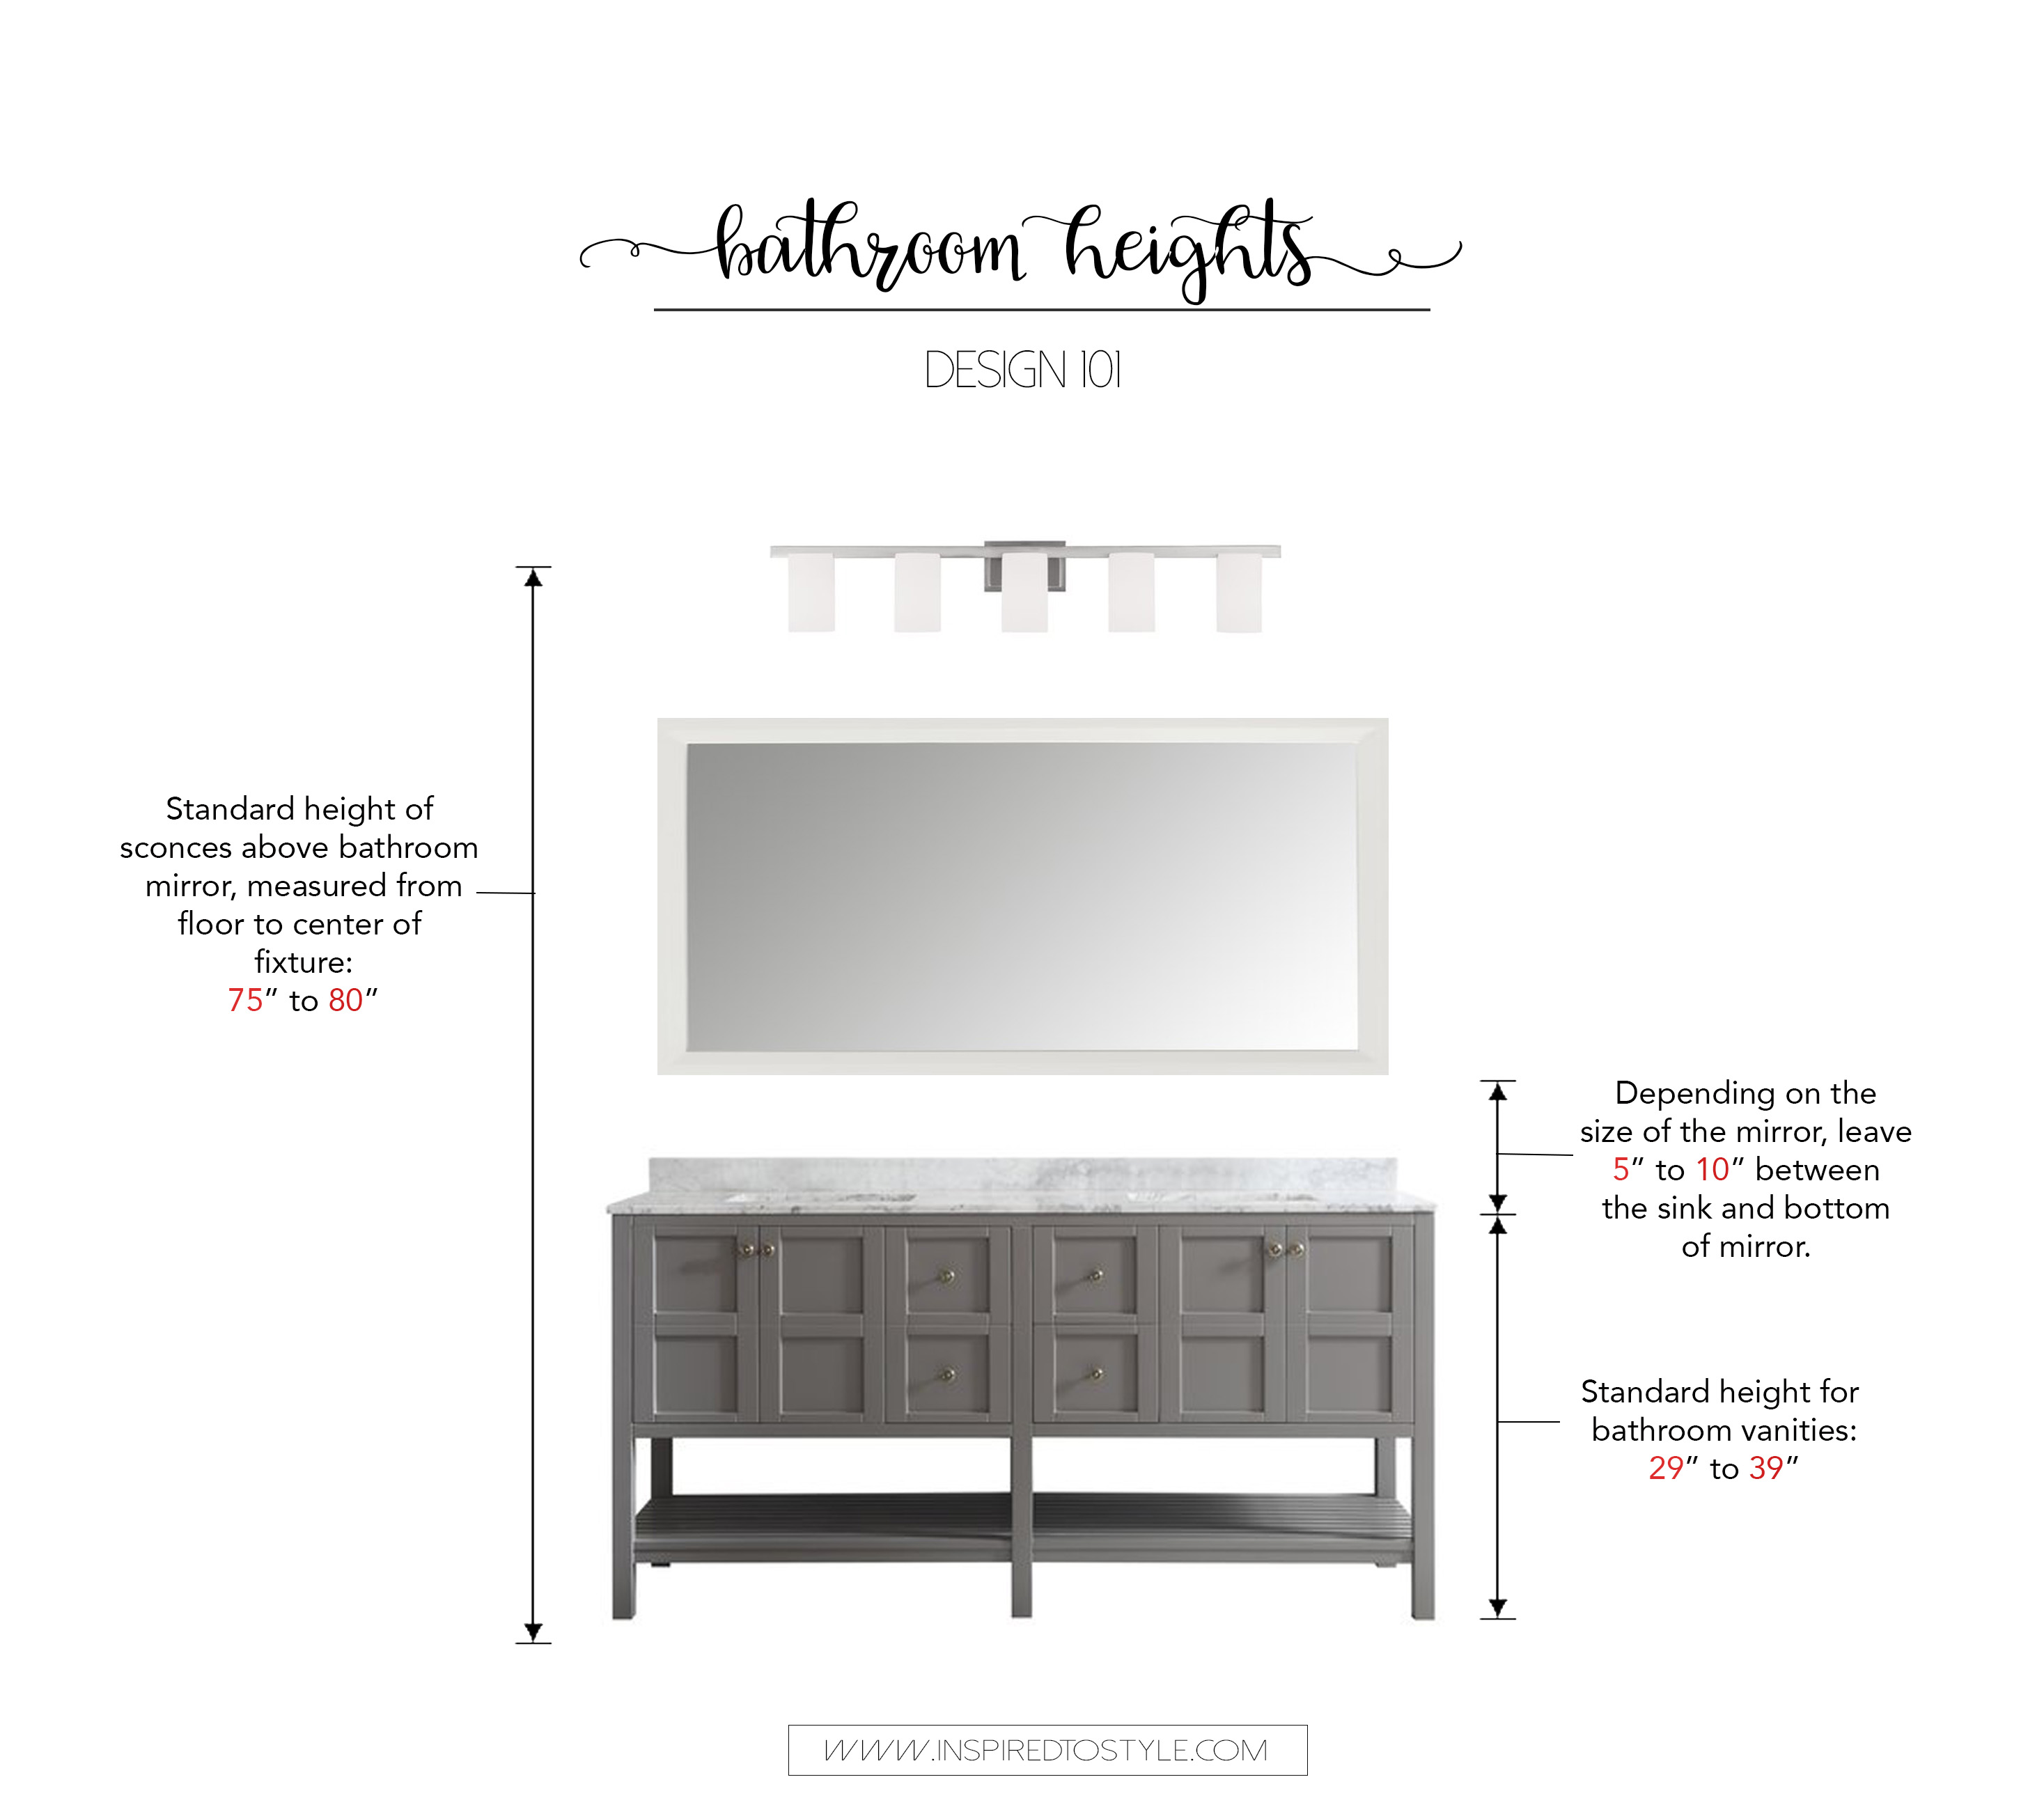 How High To Hang Vanity Lights : Design 101: How High To Place Your Bathroom Fixtures - Inspired To Style